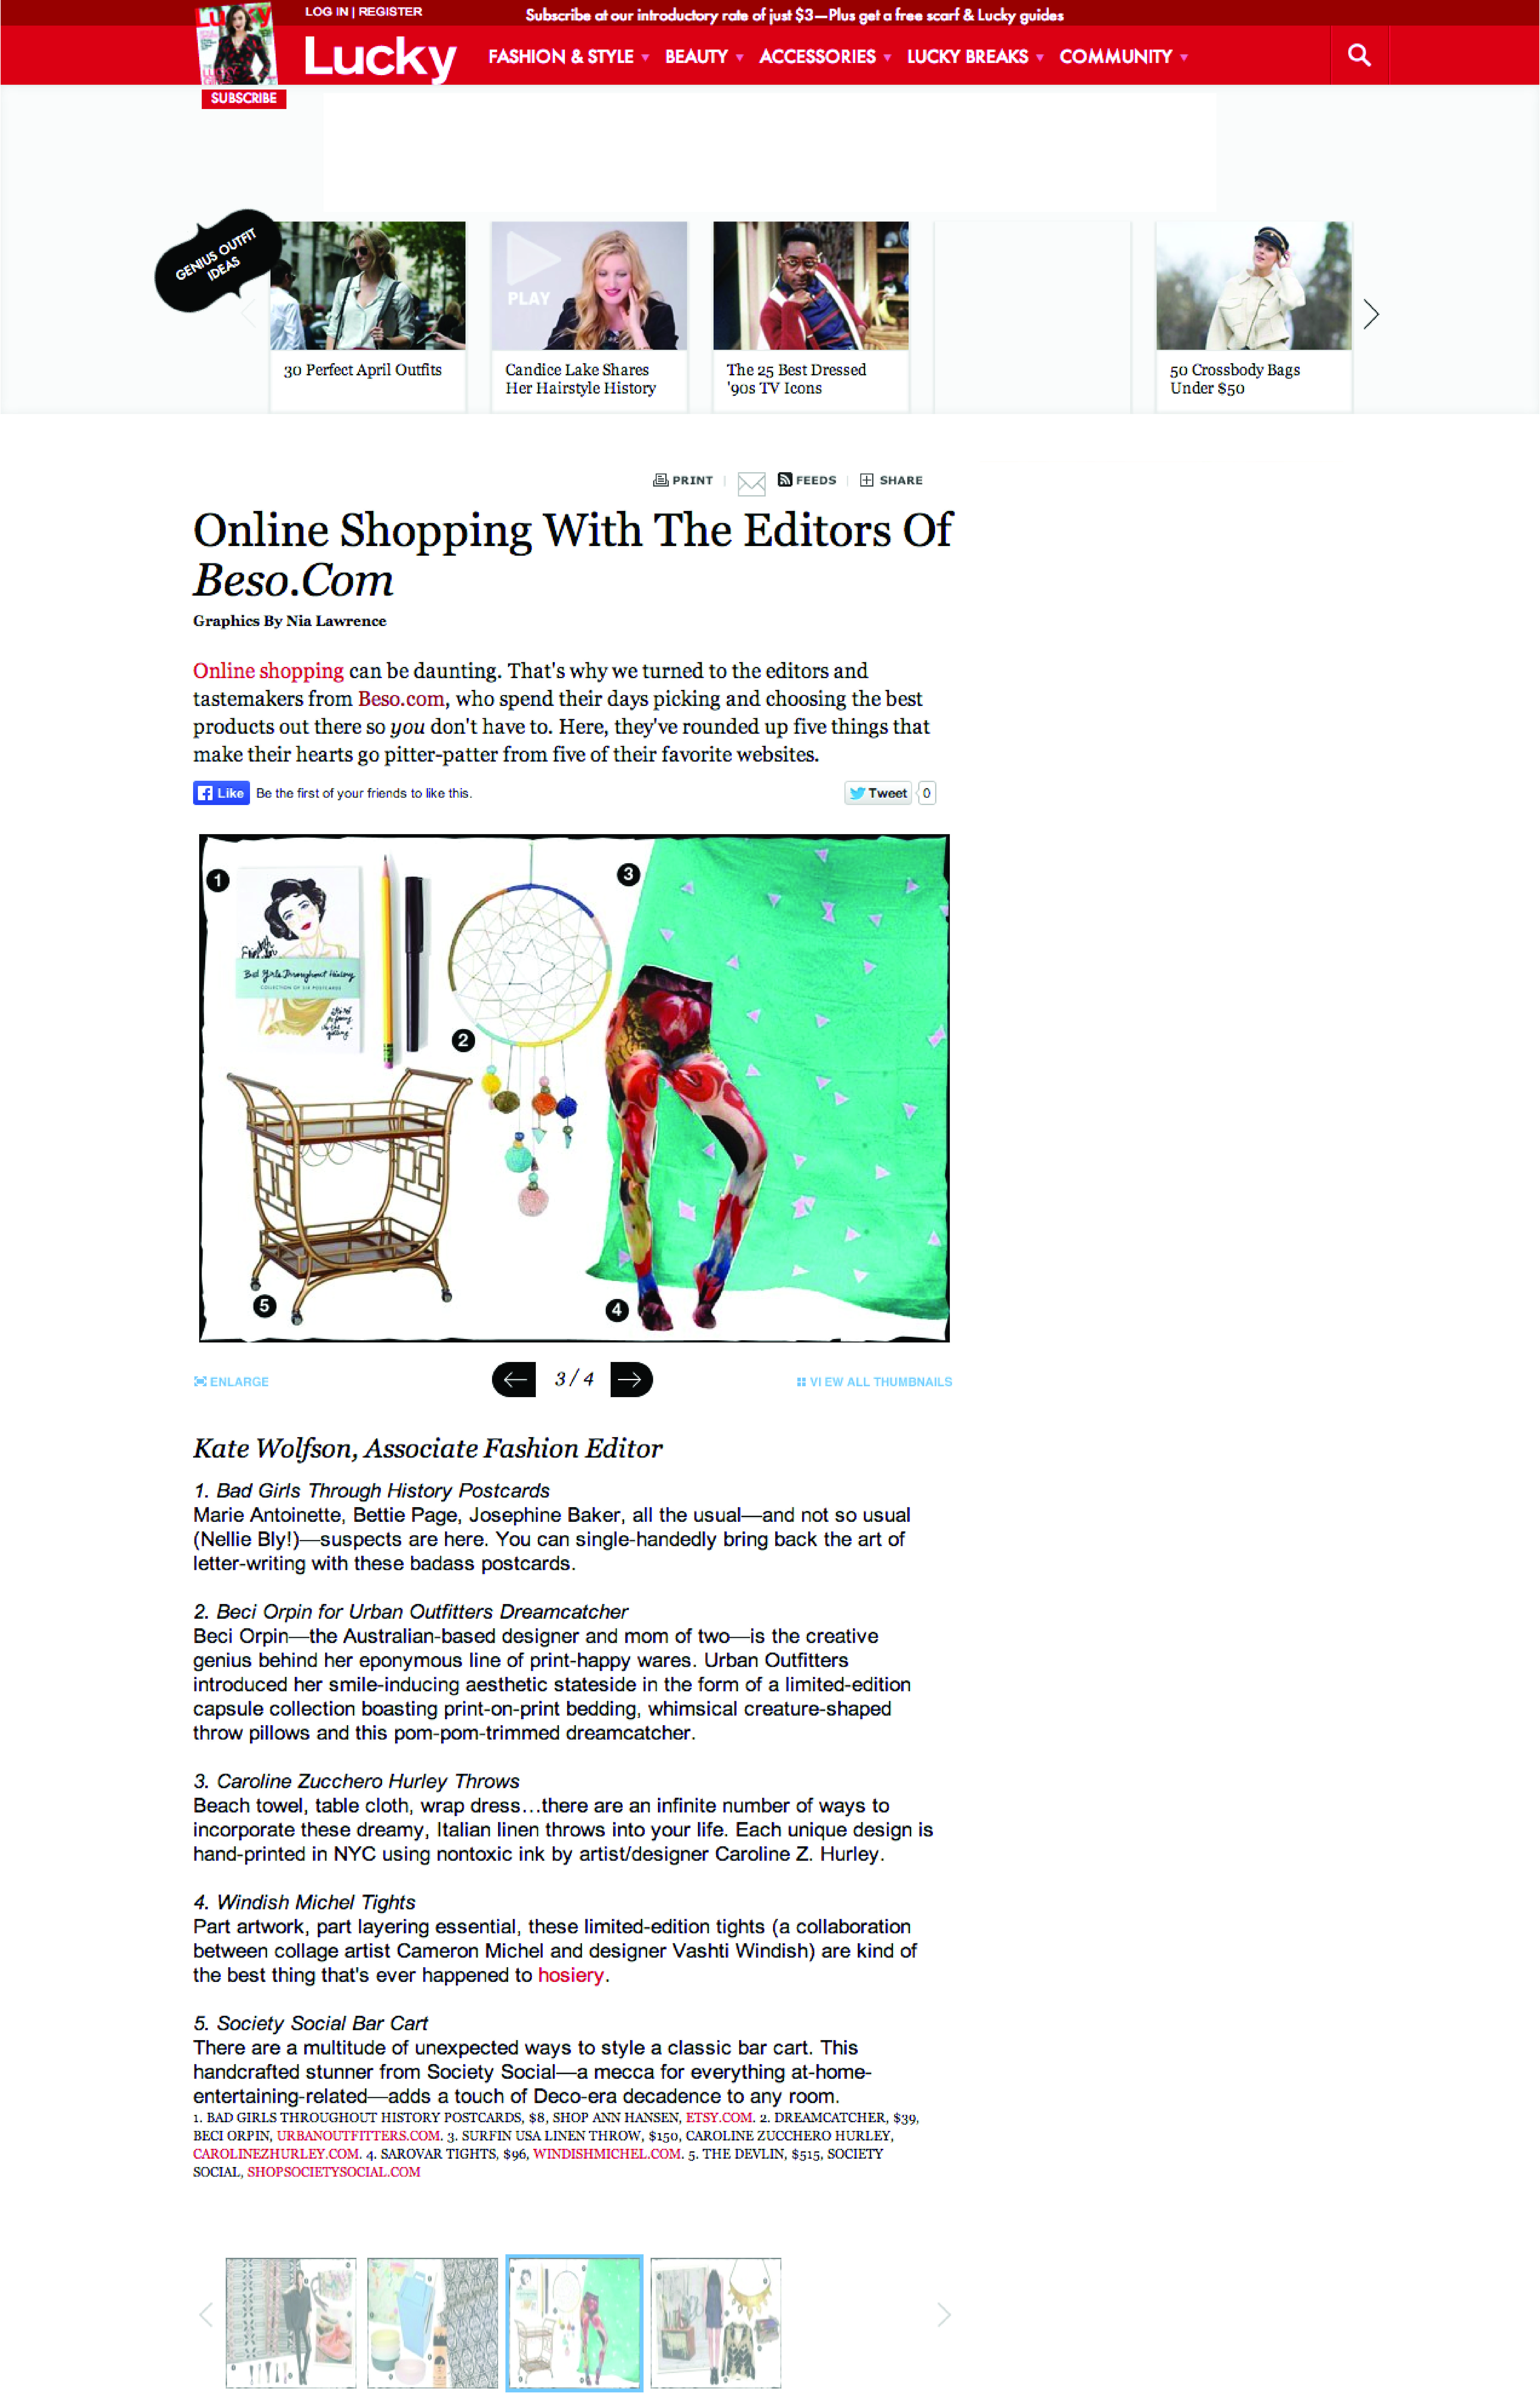 Online Shopping With The Editors of Beso.Com by Kate Wolfson for Lucky Mag